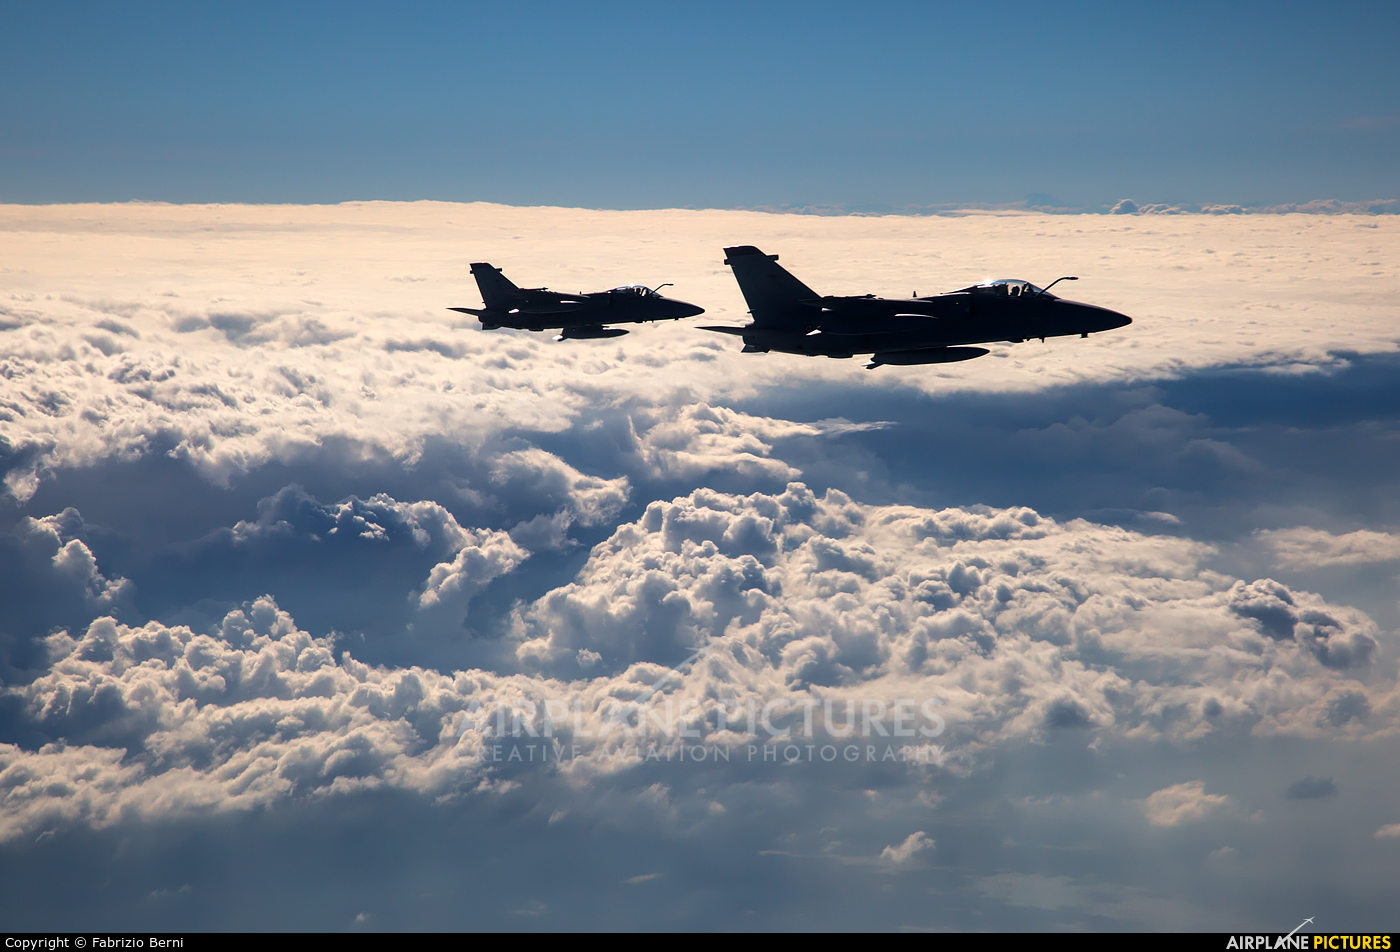 Italy - Air Force MM7162 aircraft at In Flight - Italy